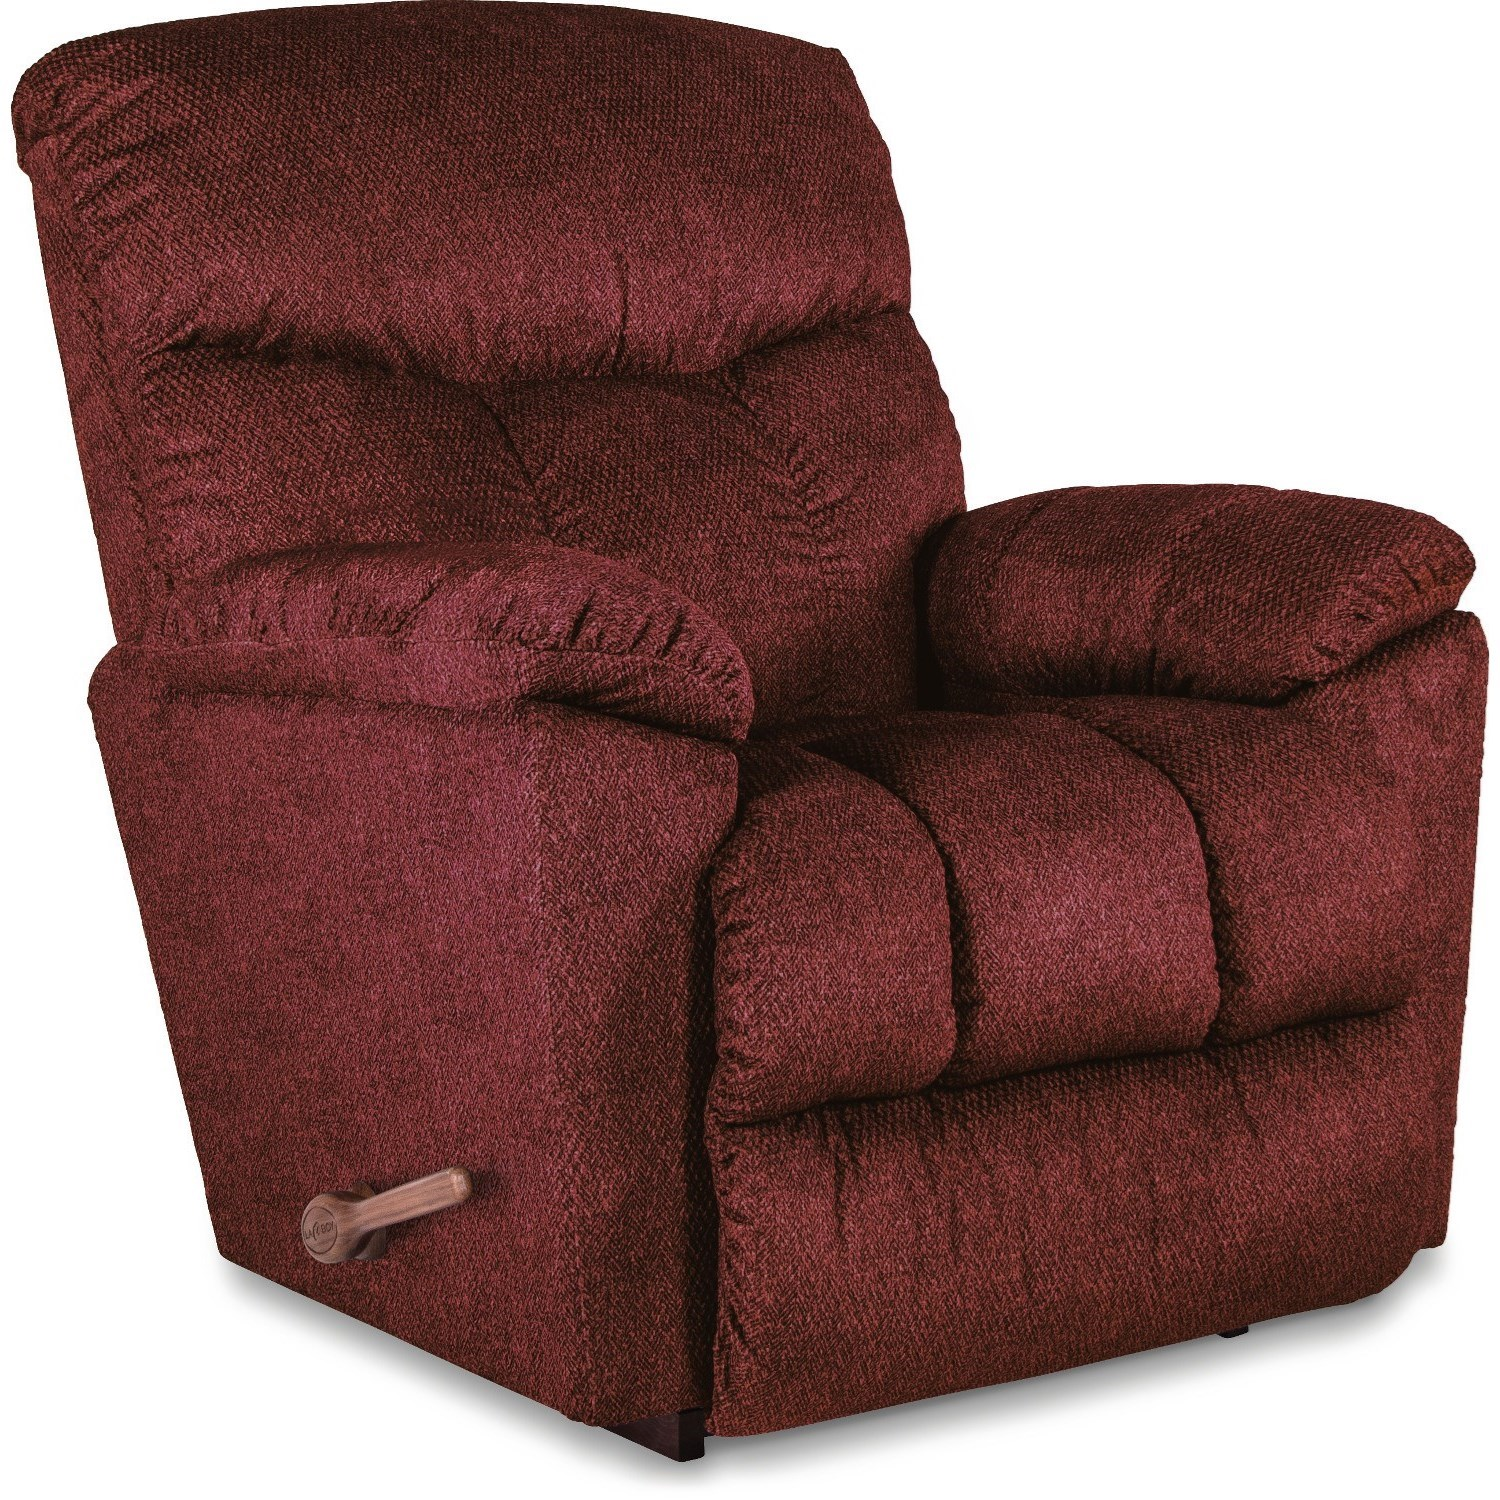 Morrison Rocking Recliner by La-Z-Boy at Jordan's Home Furnishings